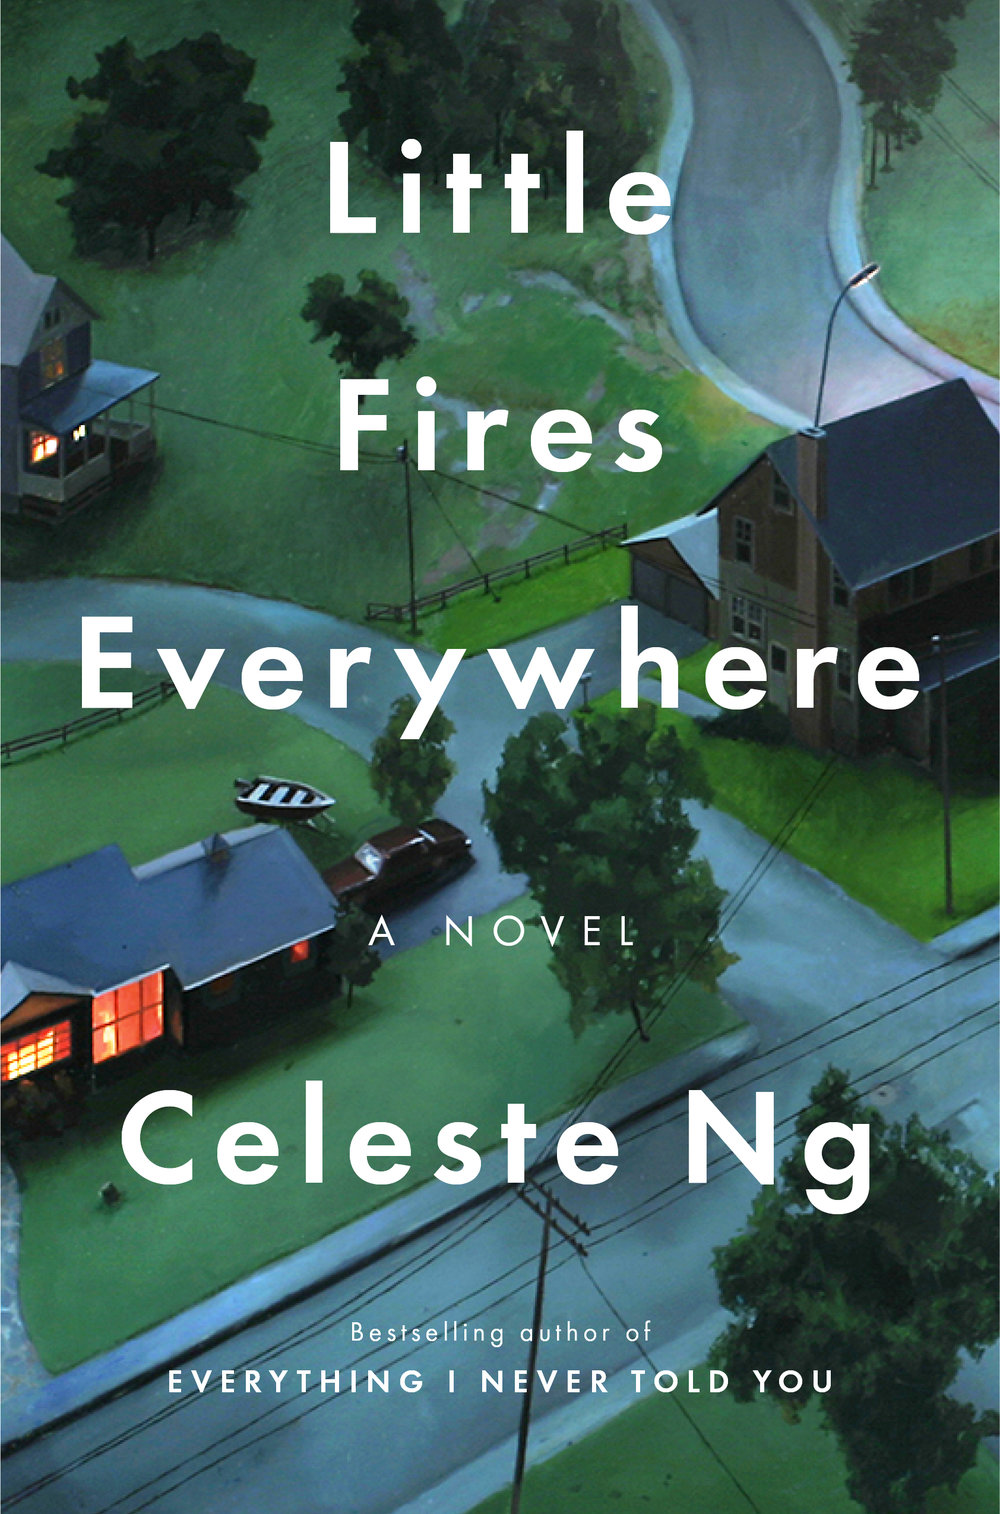 Little Fires Everywhere by Celeste Ng Penguin Press --- September 12, 2017